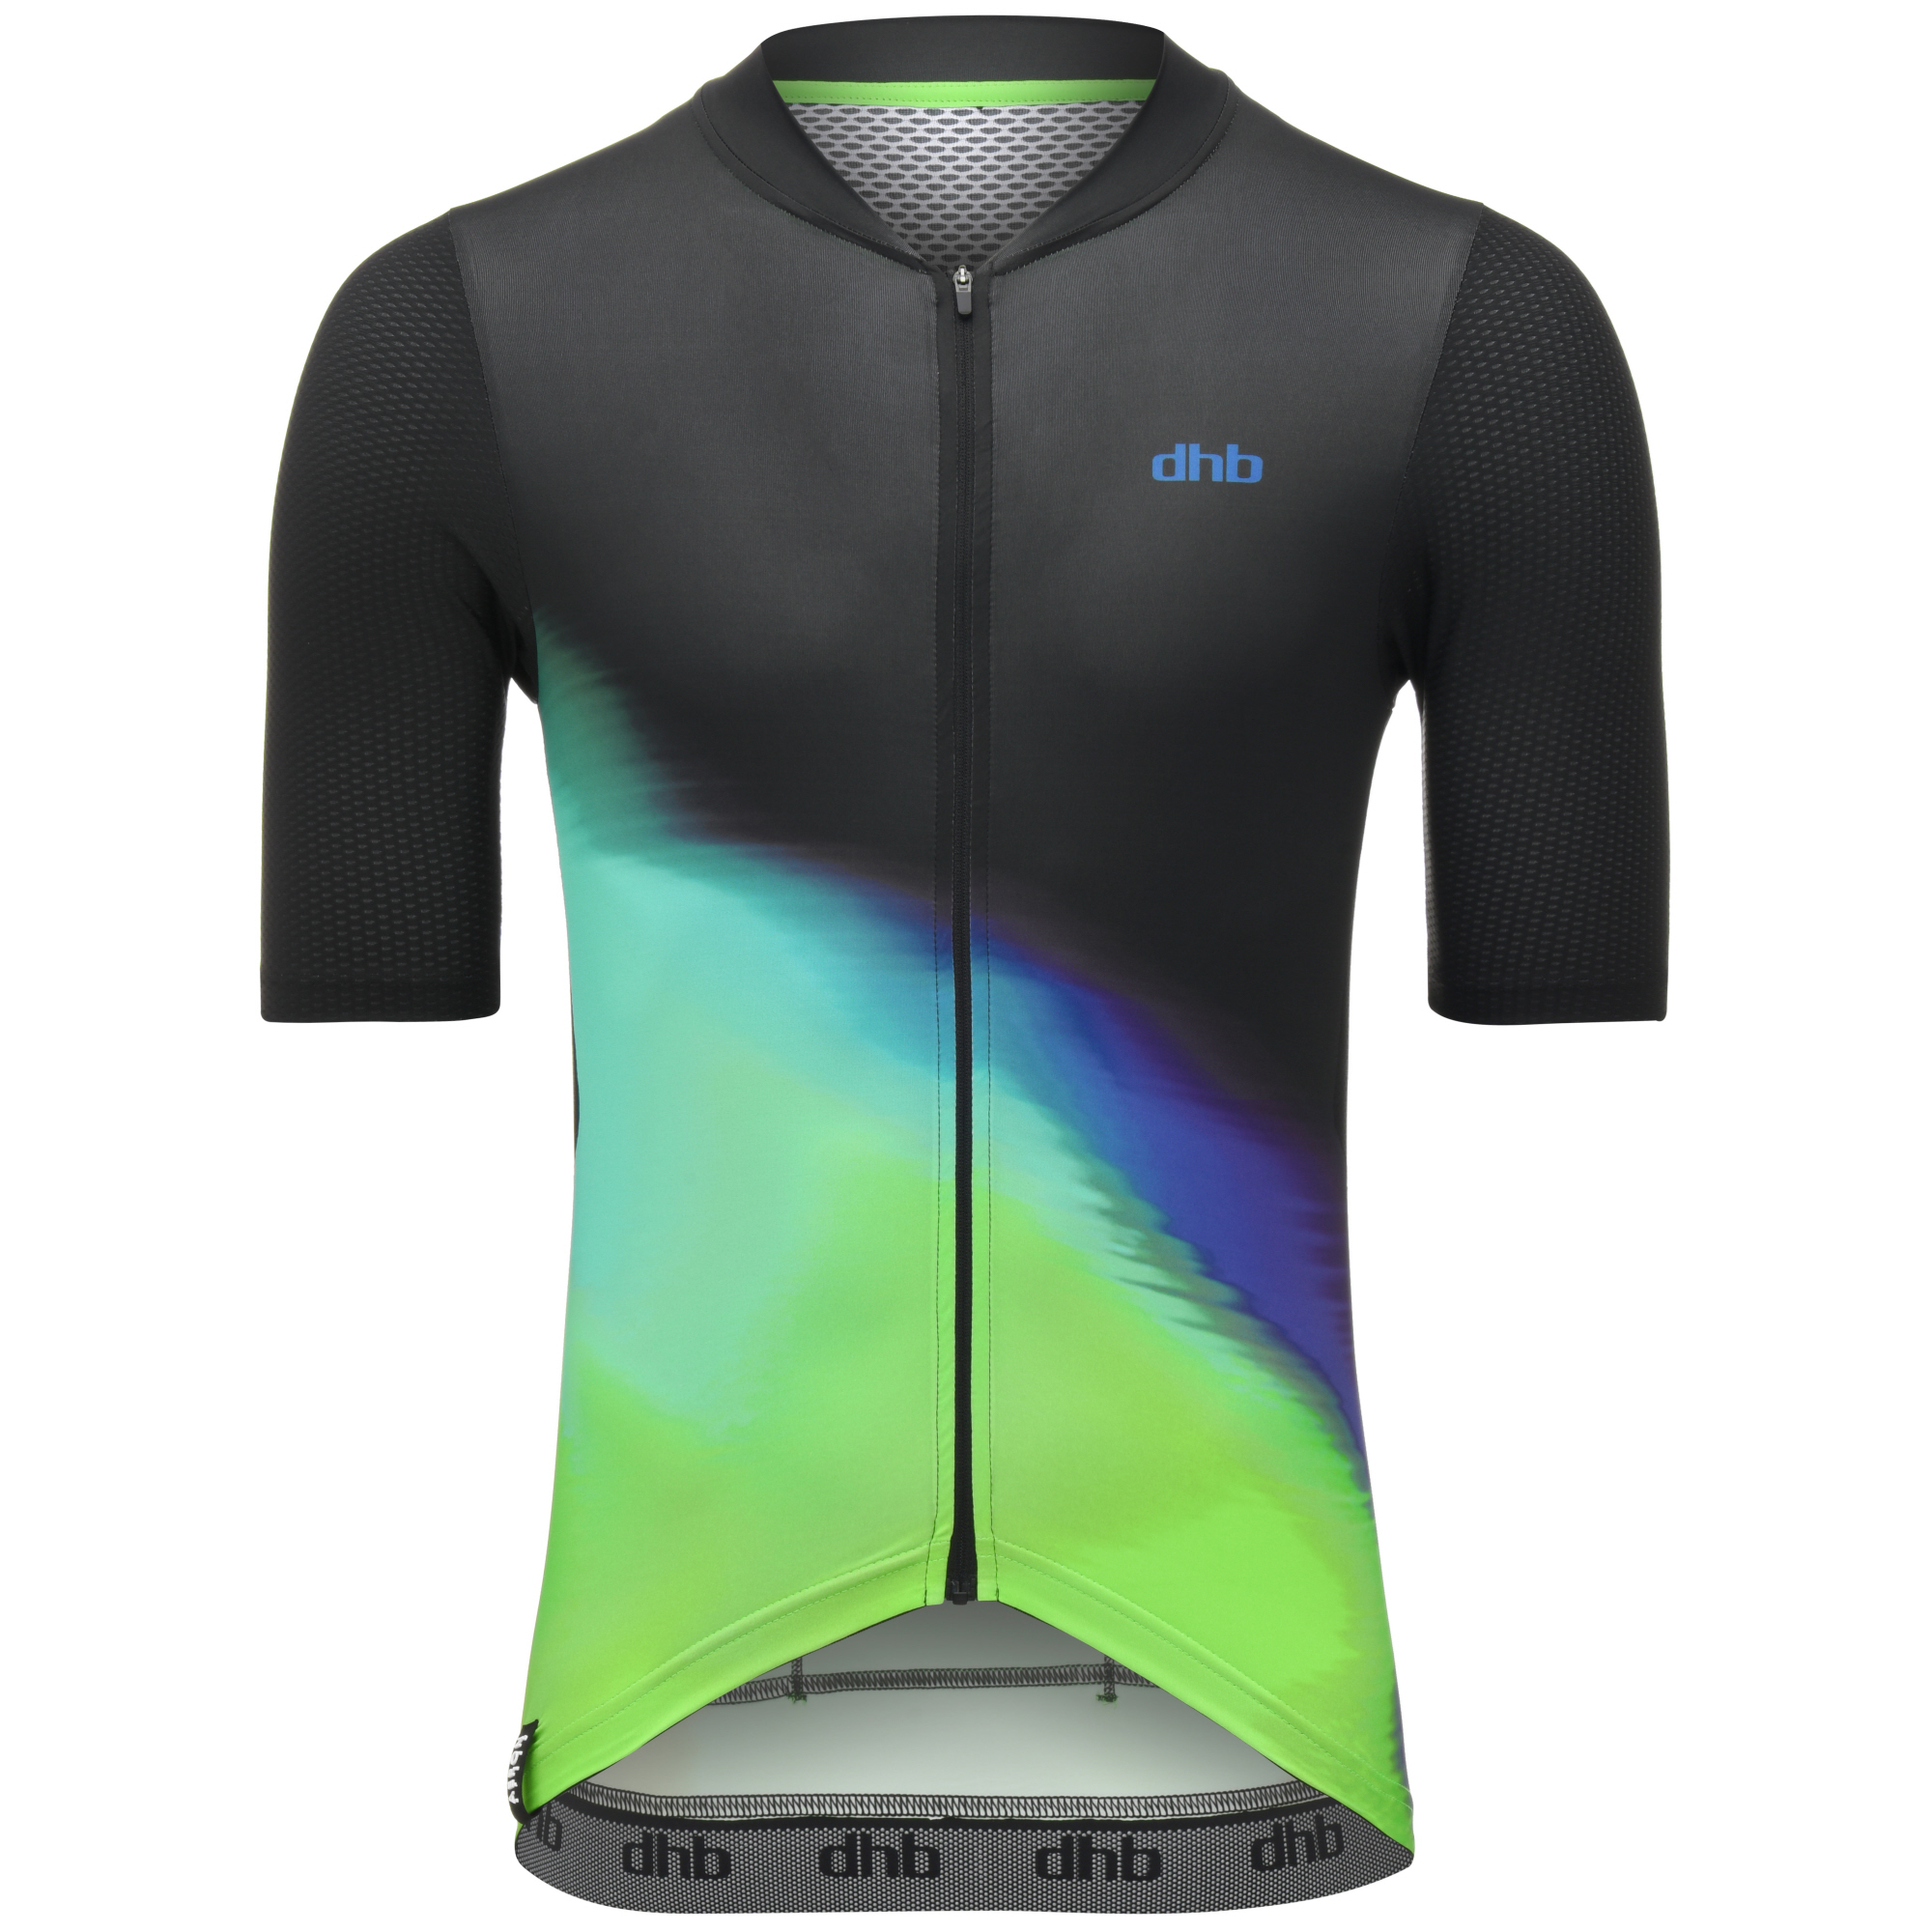 dhb Aeron Speed Short Sleeve Jersey - Chroma | Jerseys